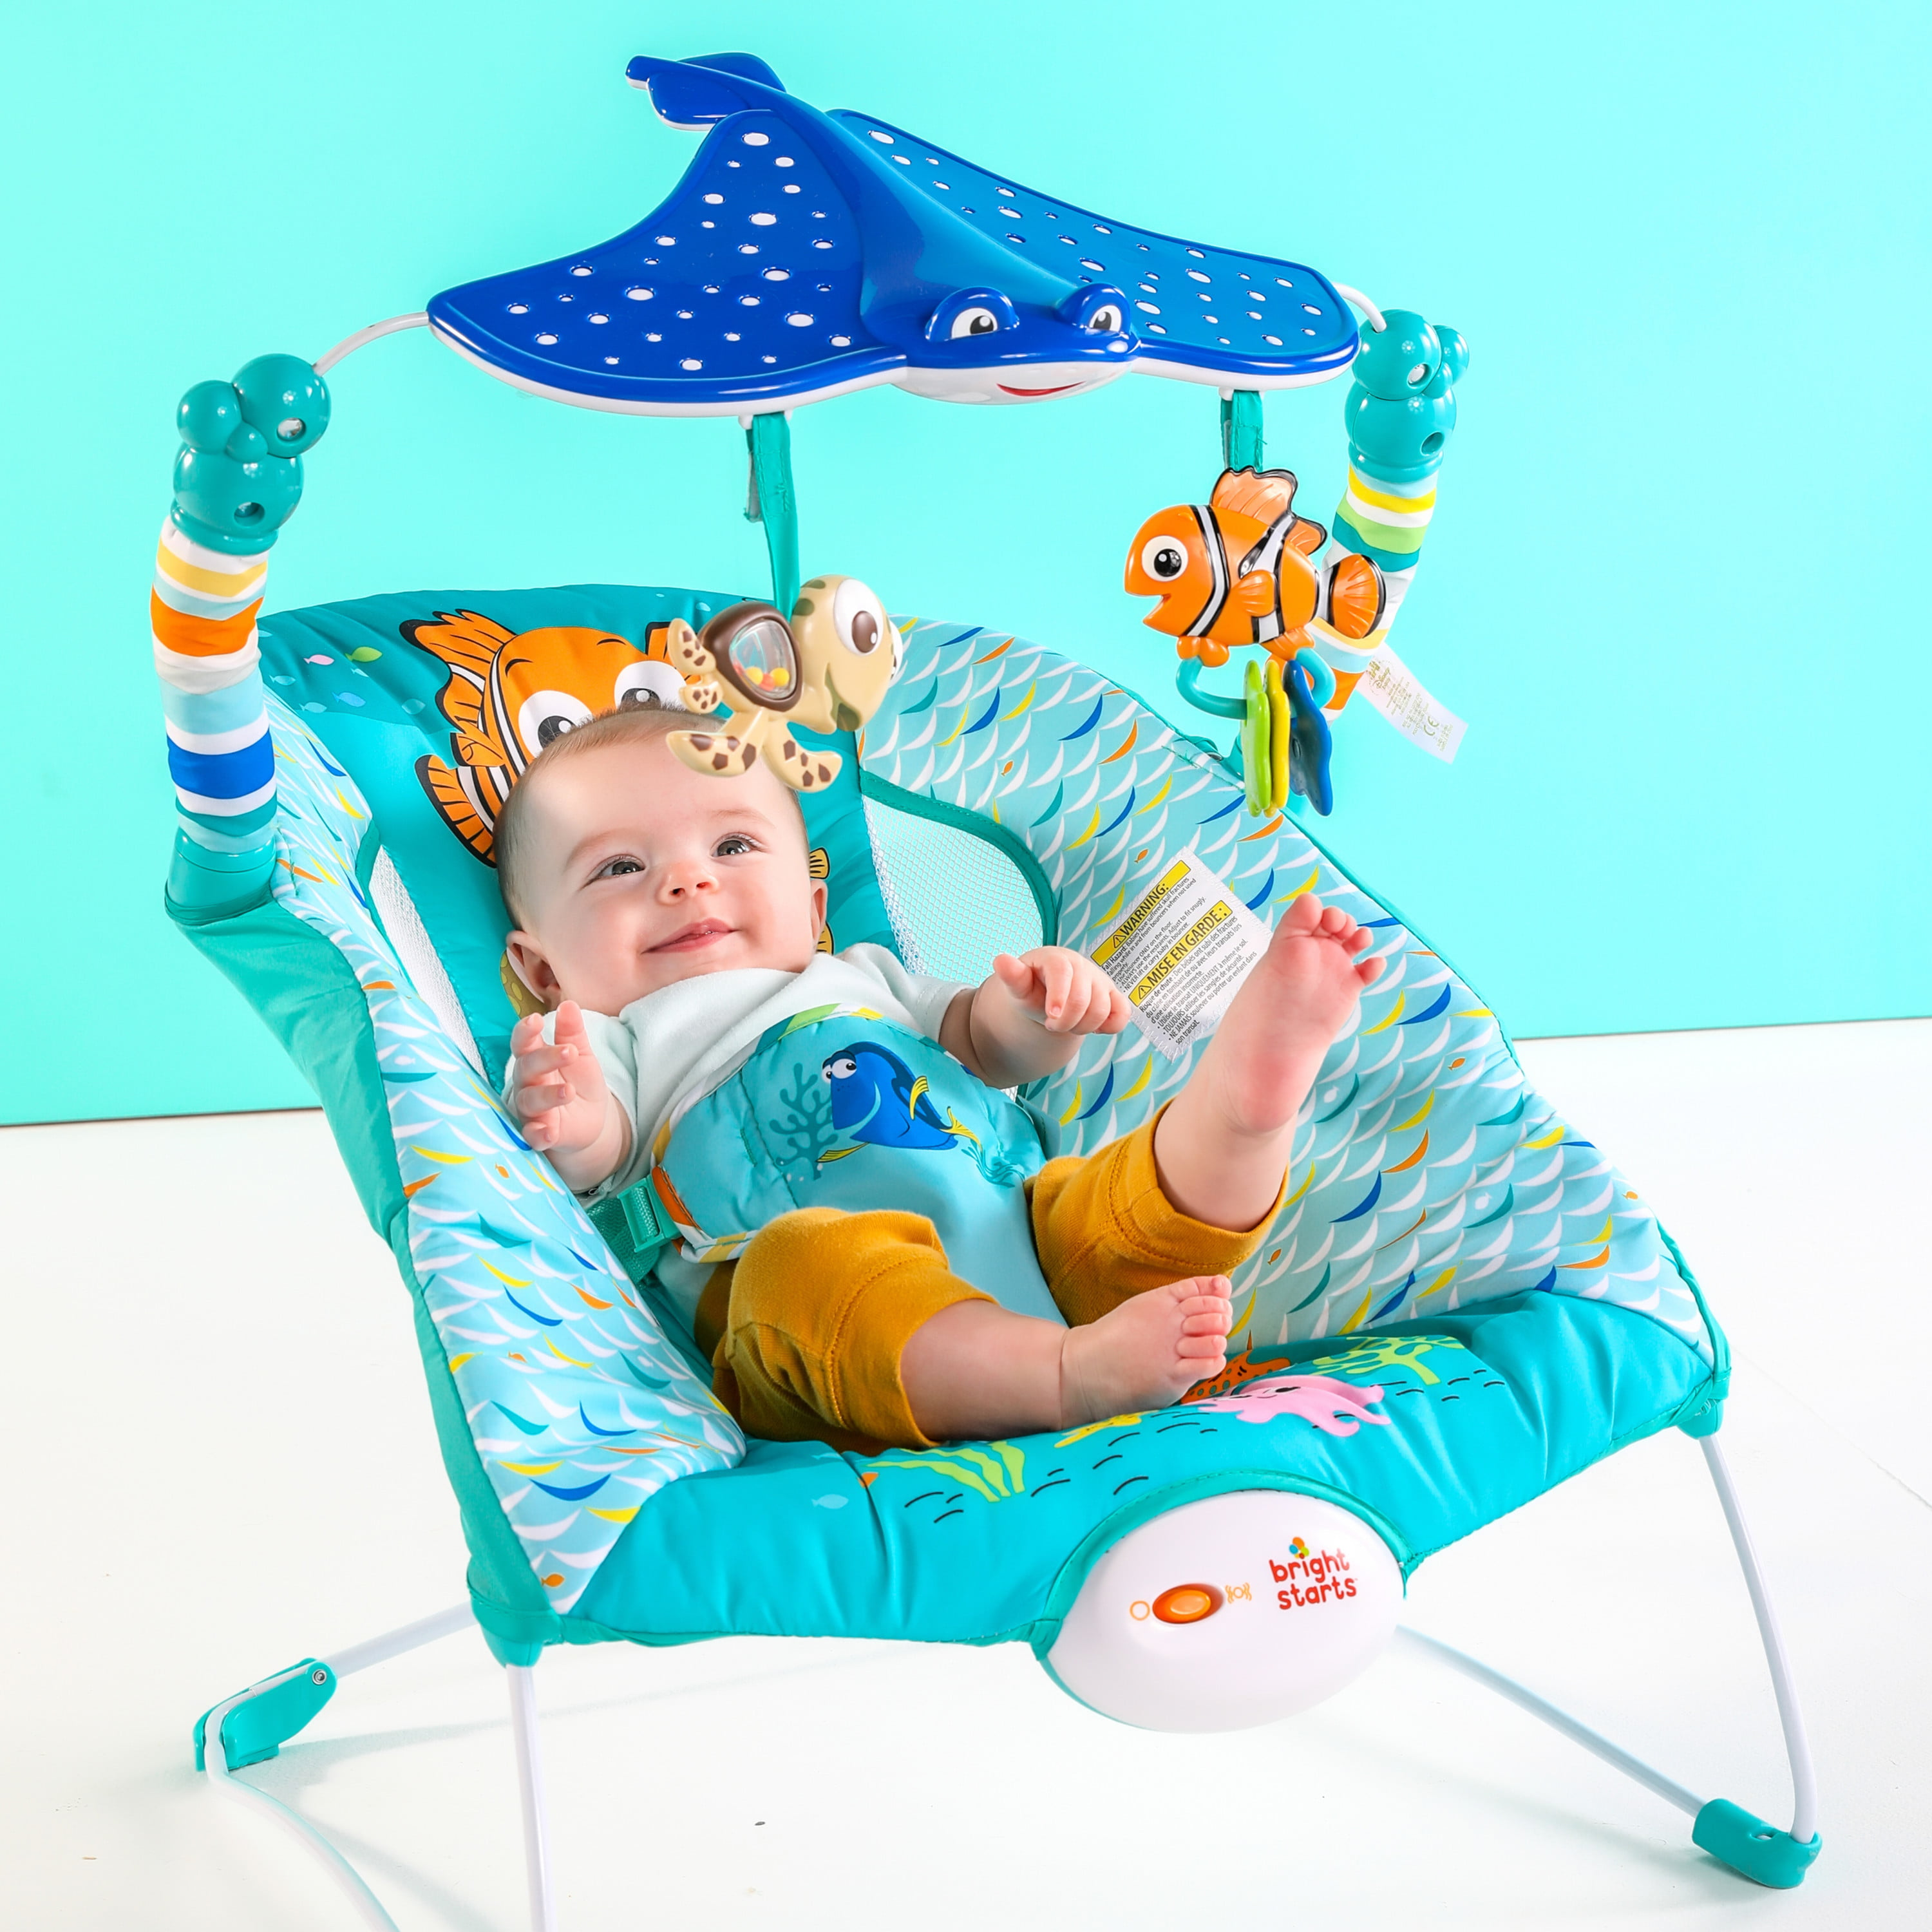 58bebaffe7f Disney Baby Finding Nemo Bouncer Seat - See & Swim - from Bright Starts